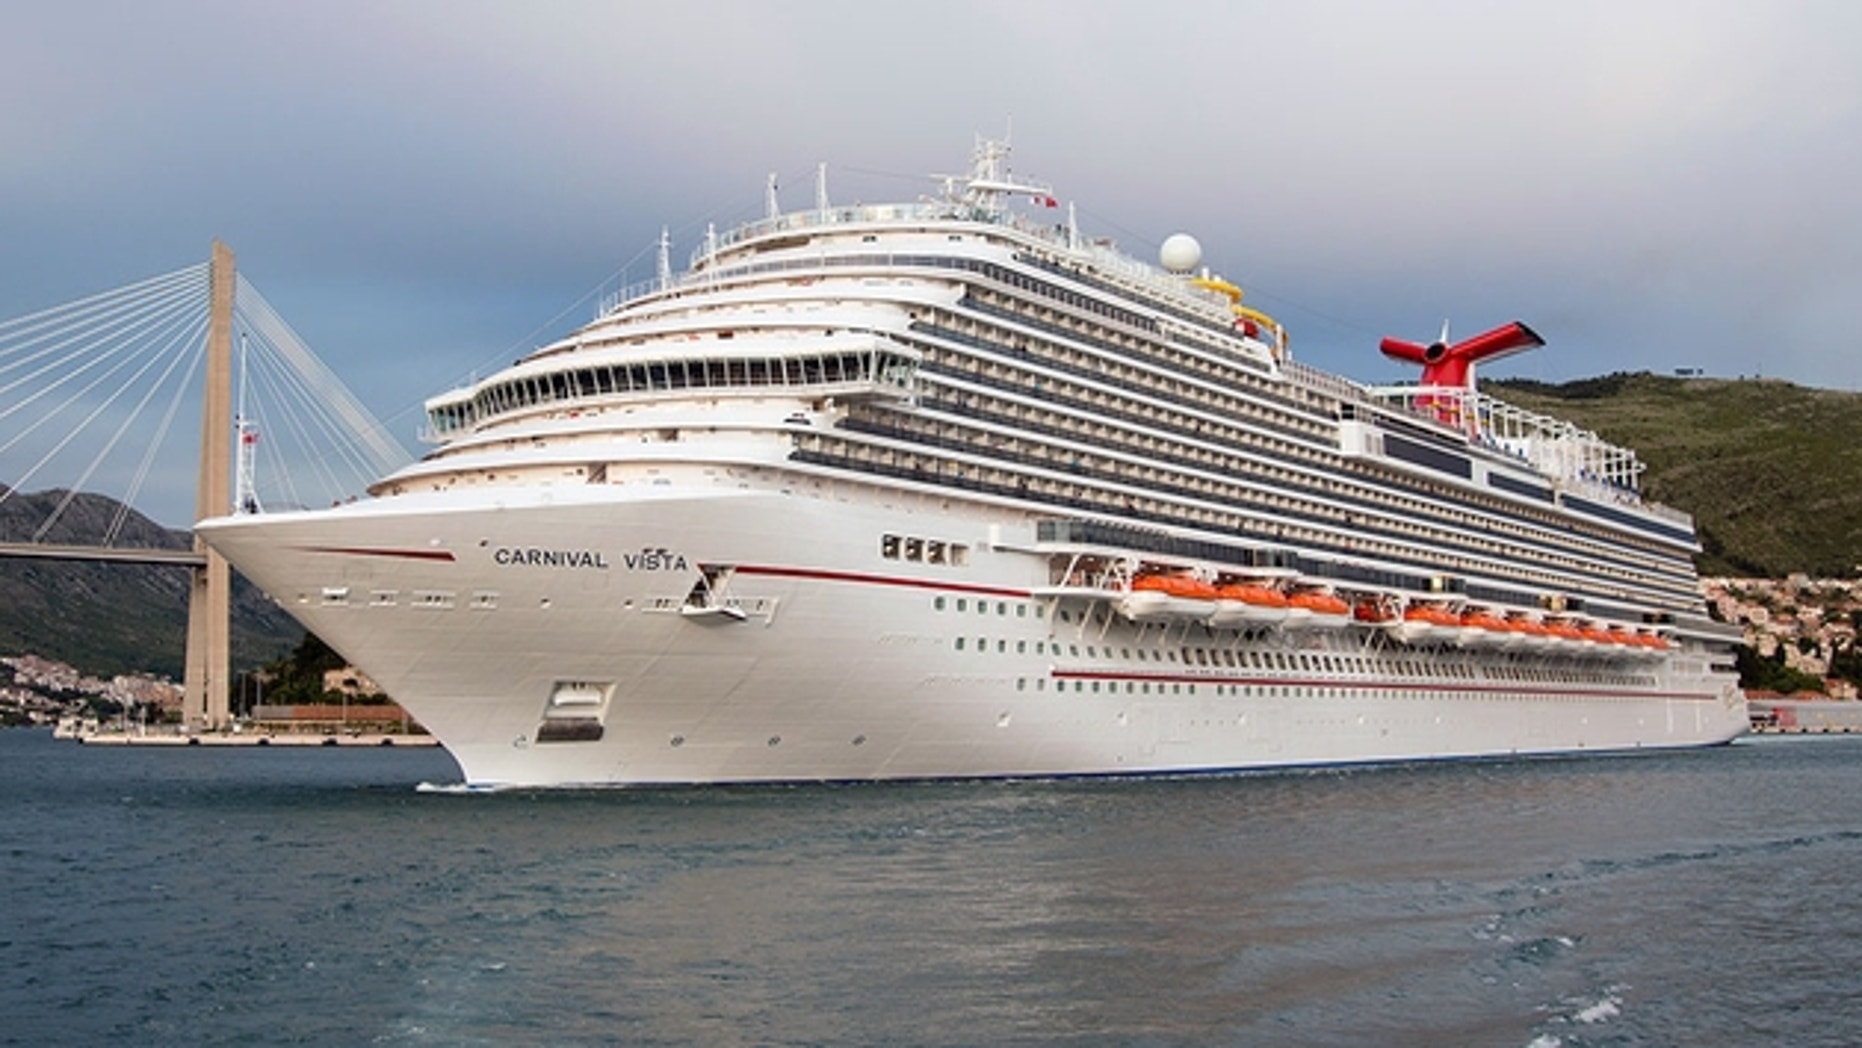 The Carnival Vista is the cruise line's largest ship.